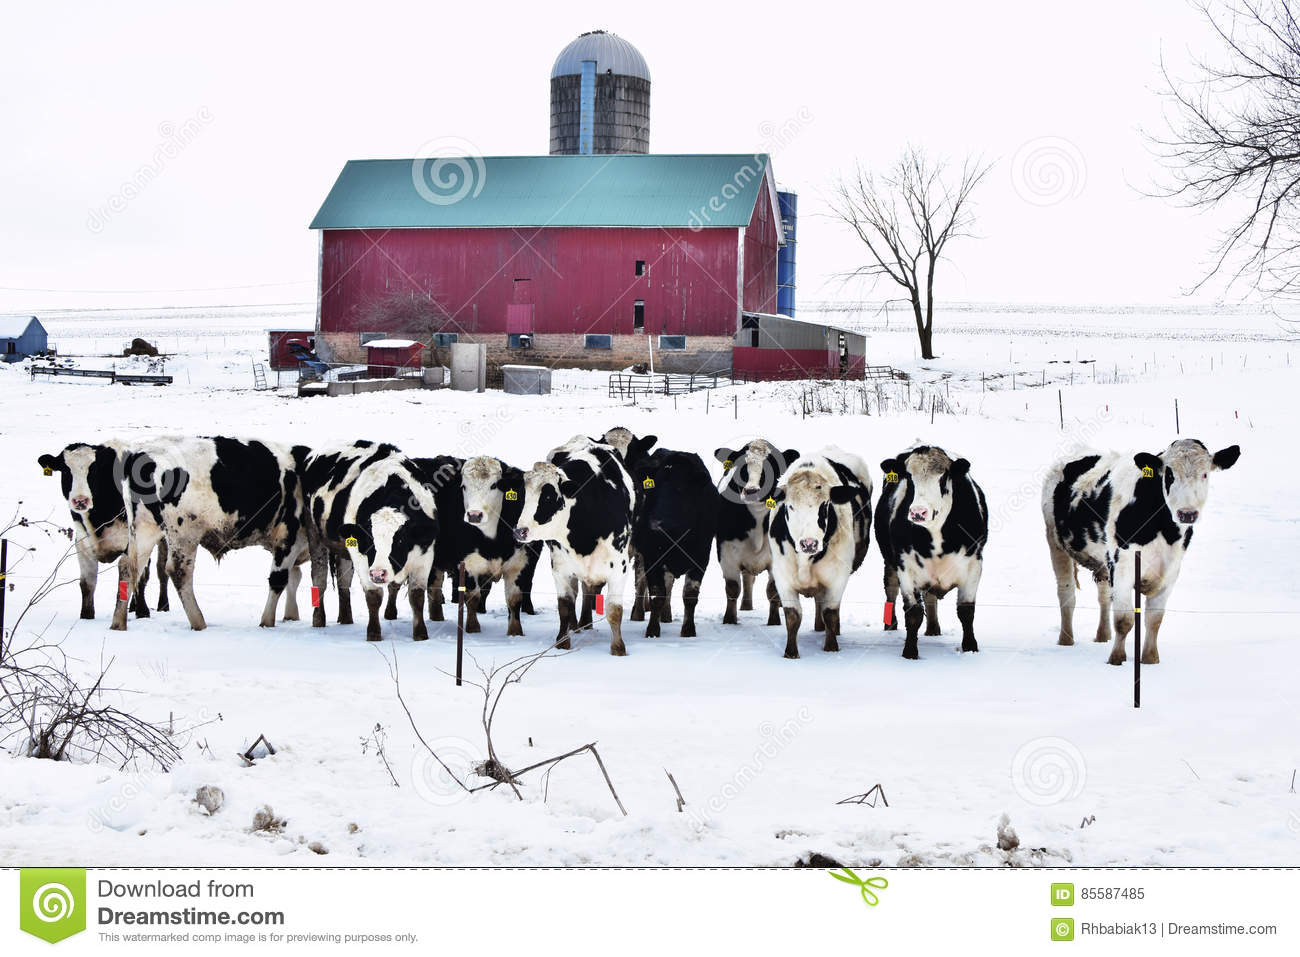 Crowd of Cows